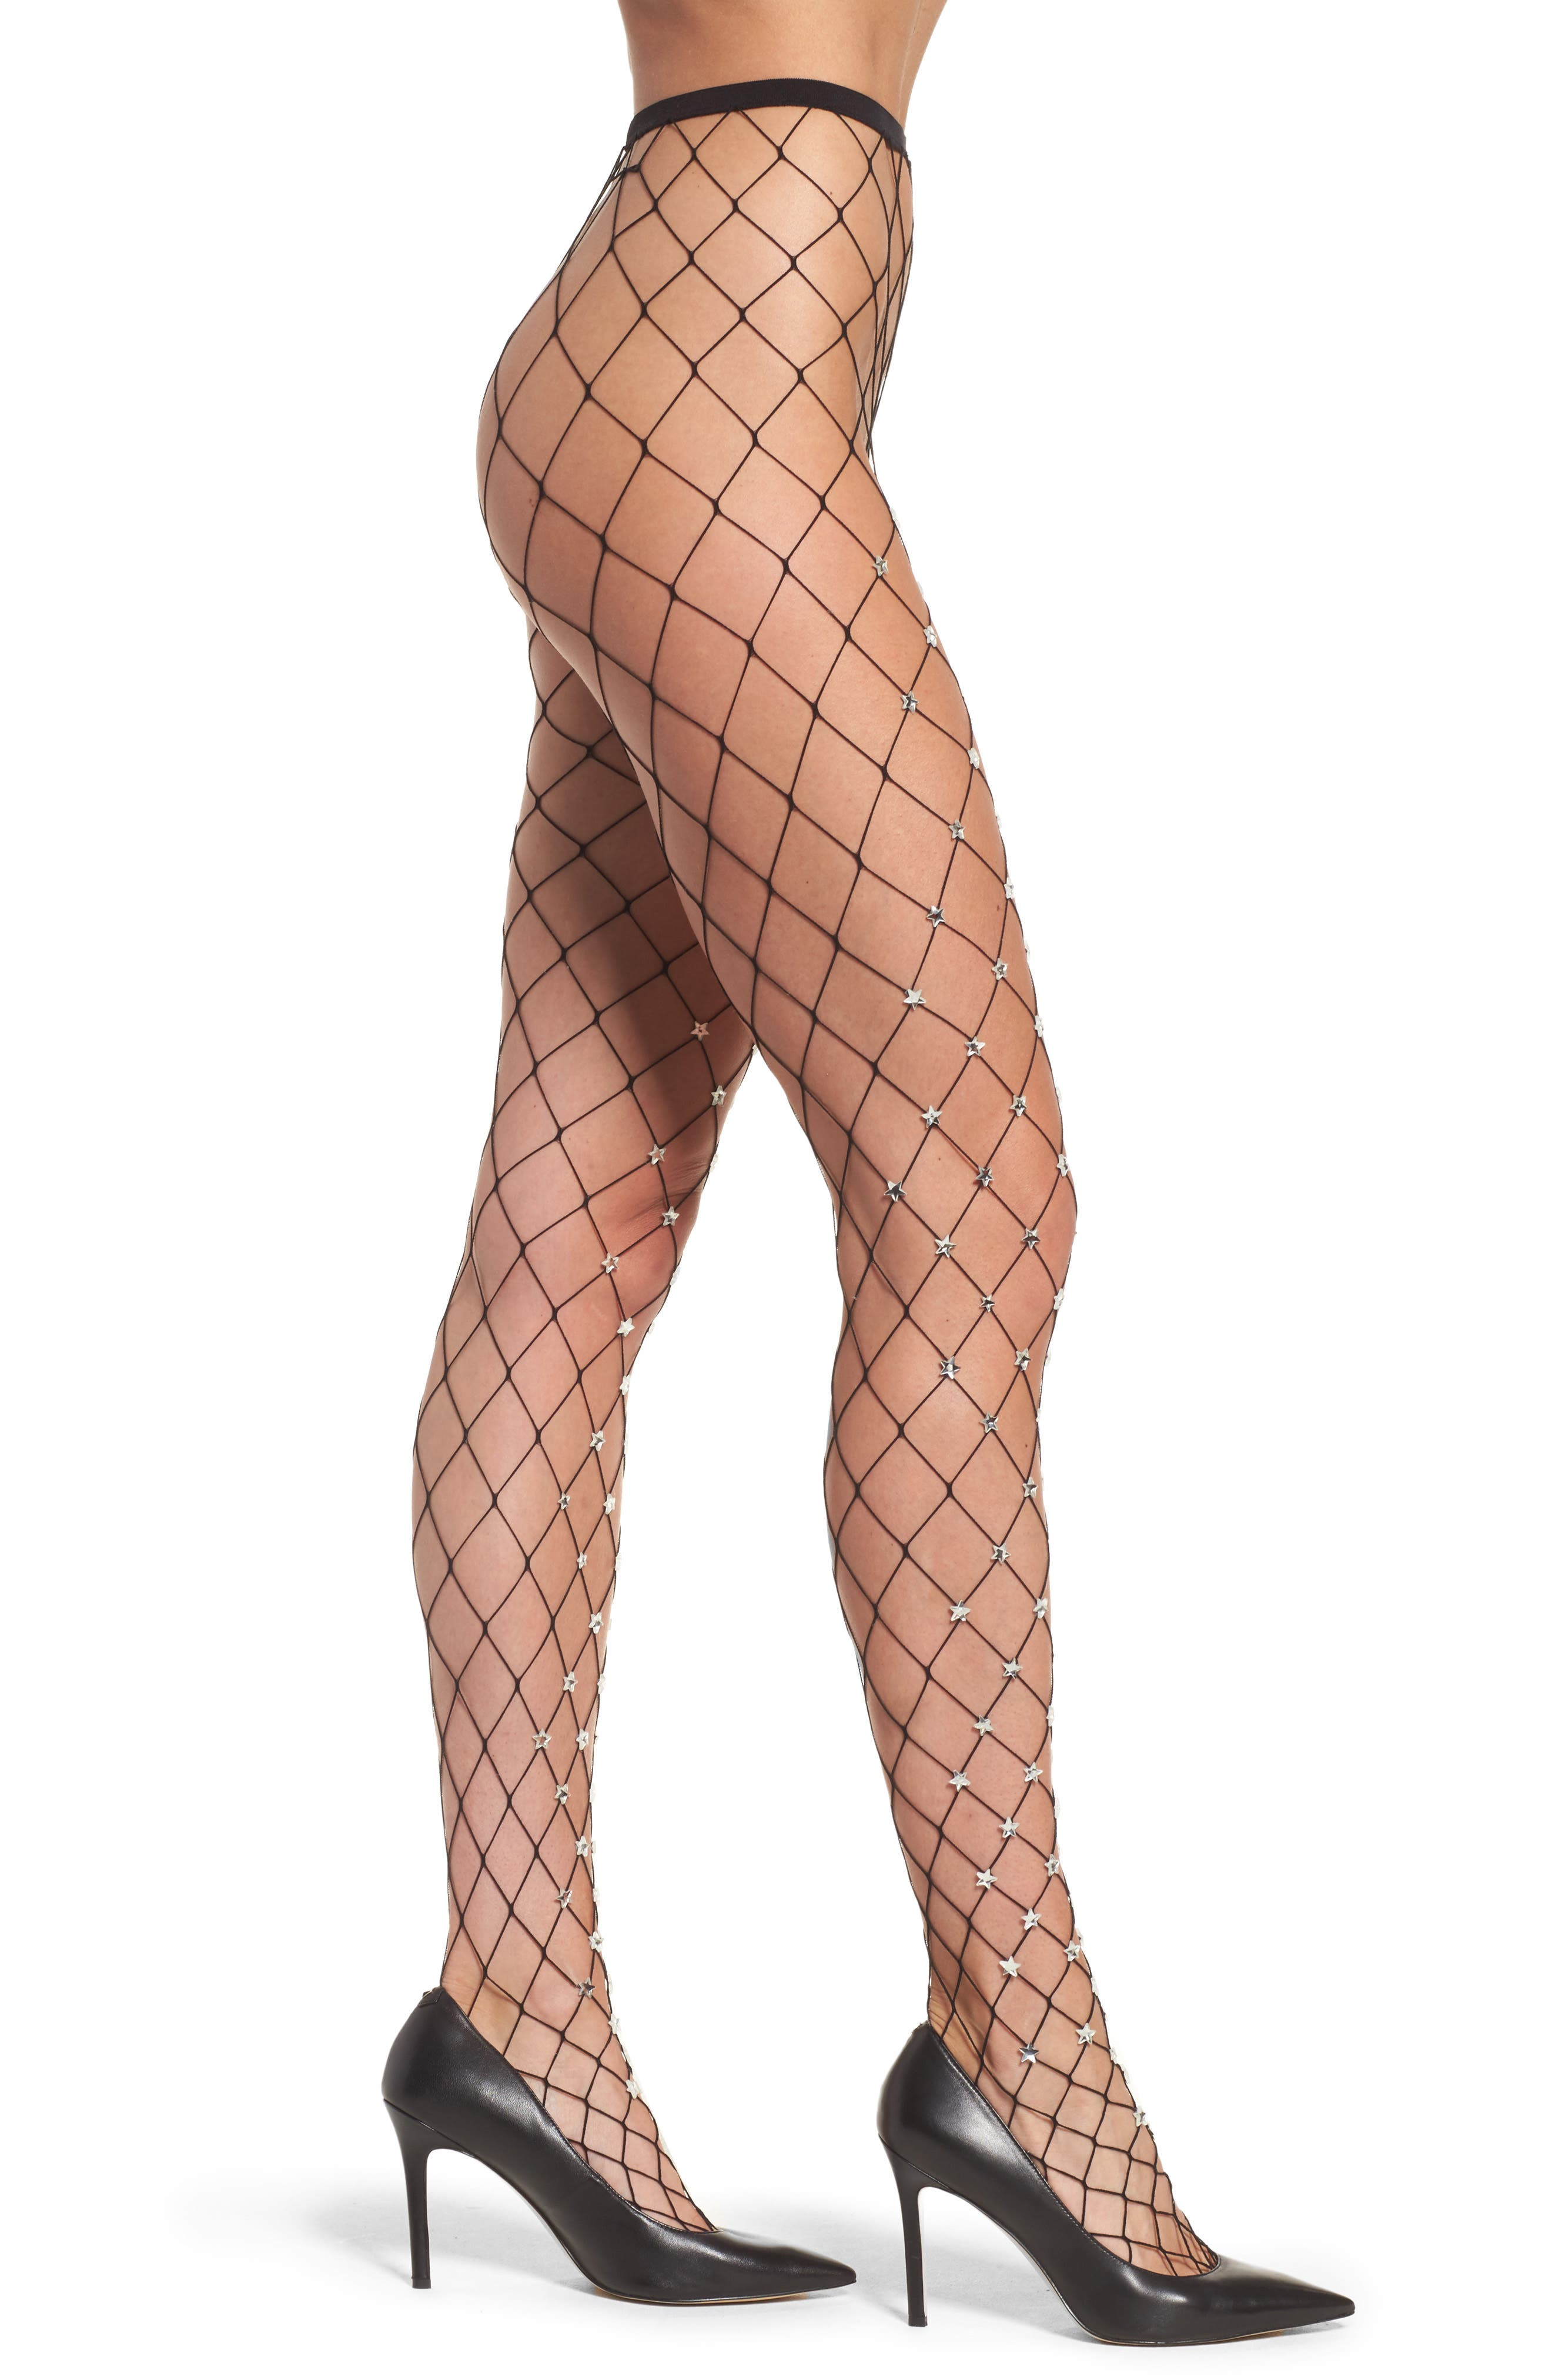 LIRIKA MATOSHI Silver Starry Fishnet Tights, Main, color, 001